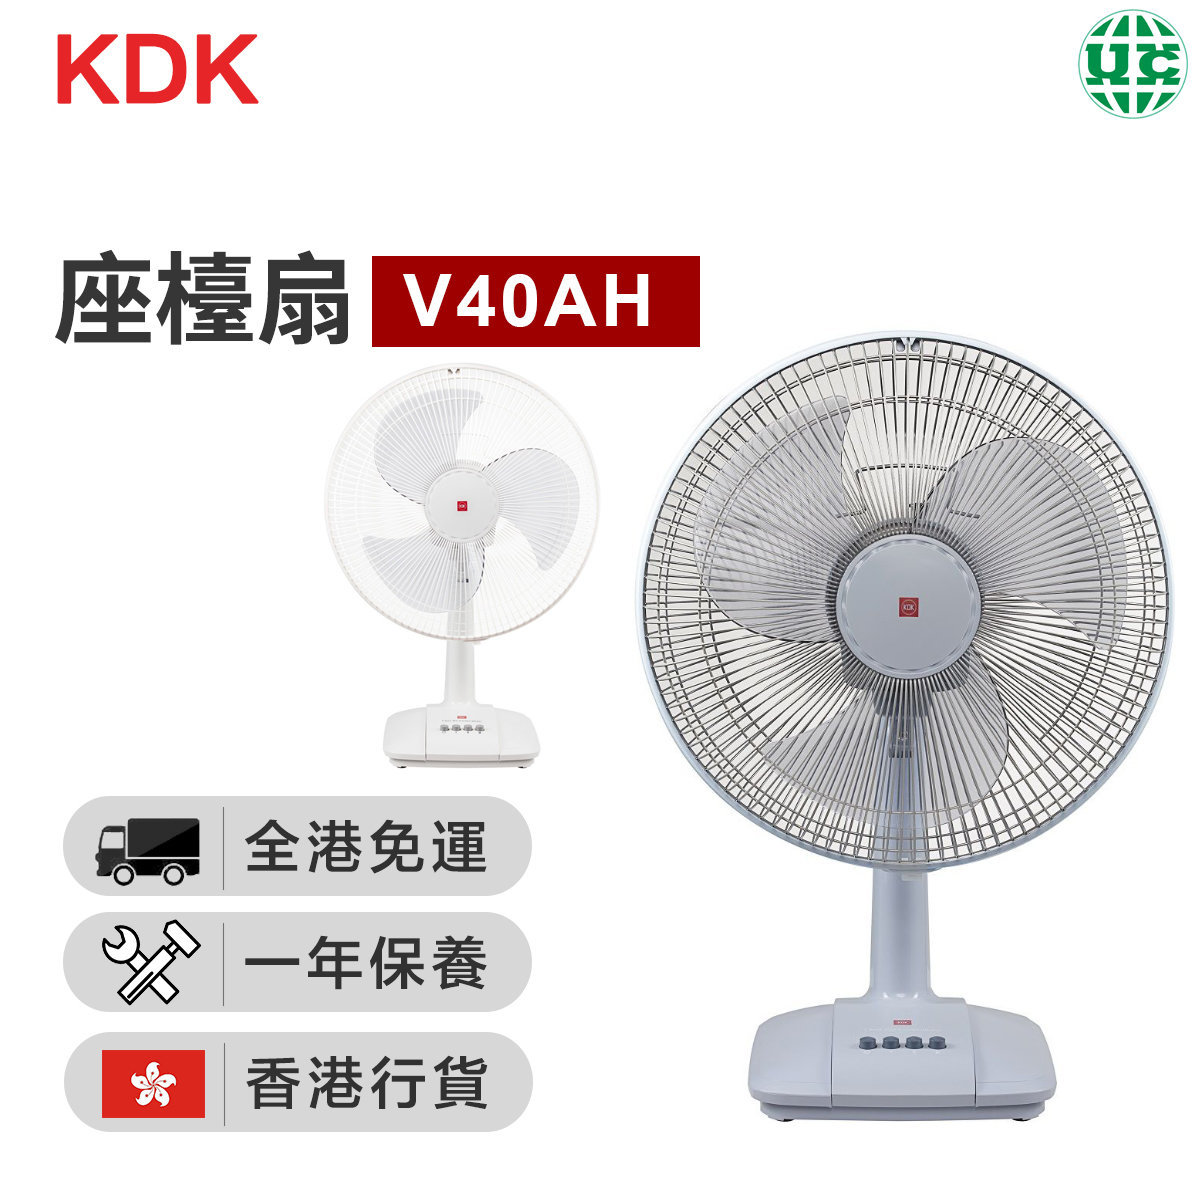 V40AH table fan(blue)(Hong Kong licensed)